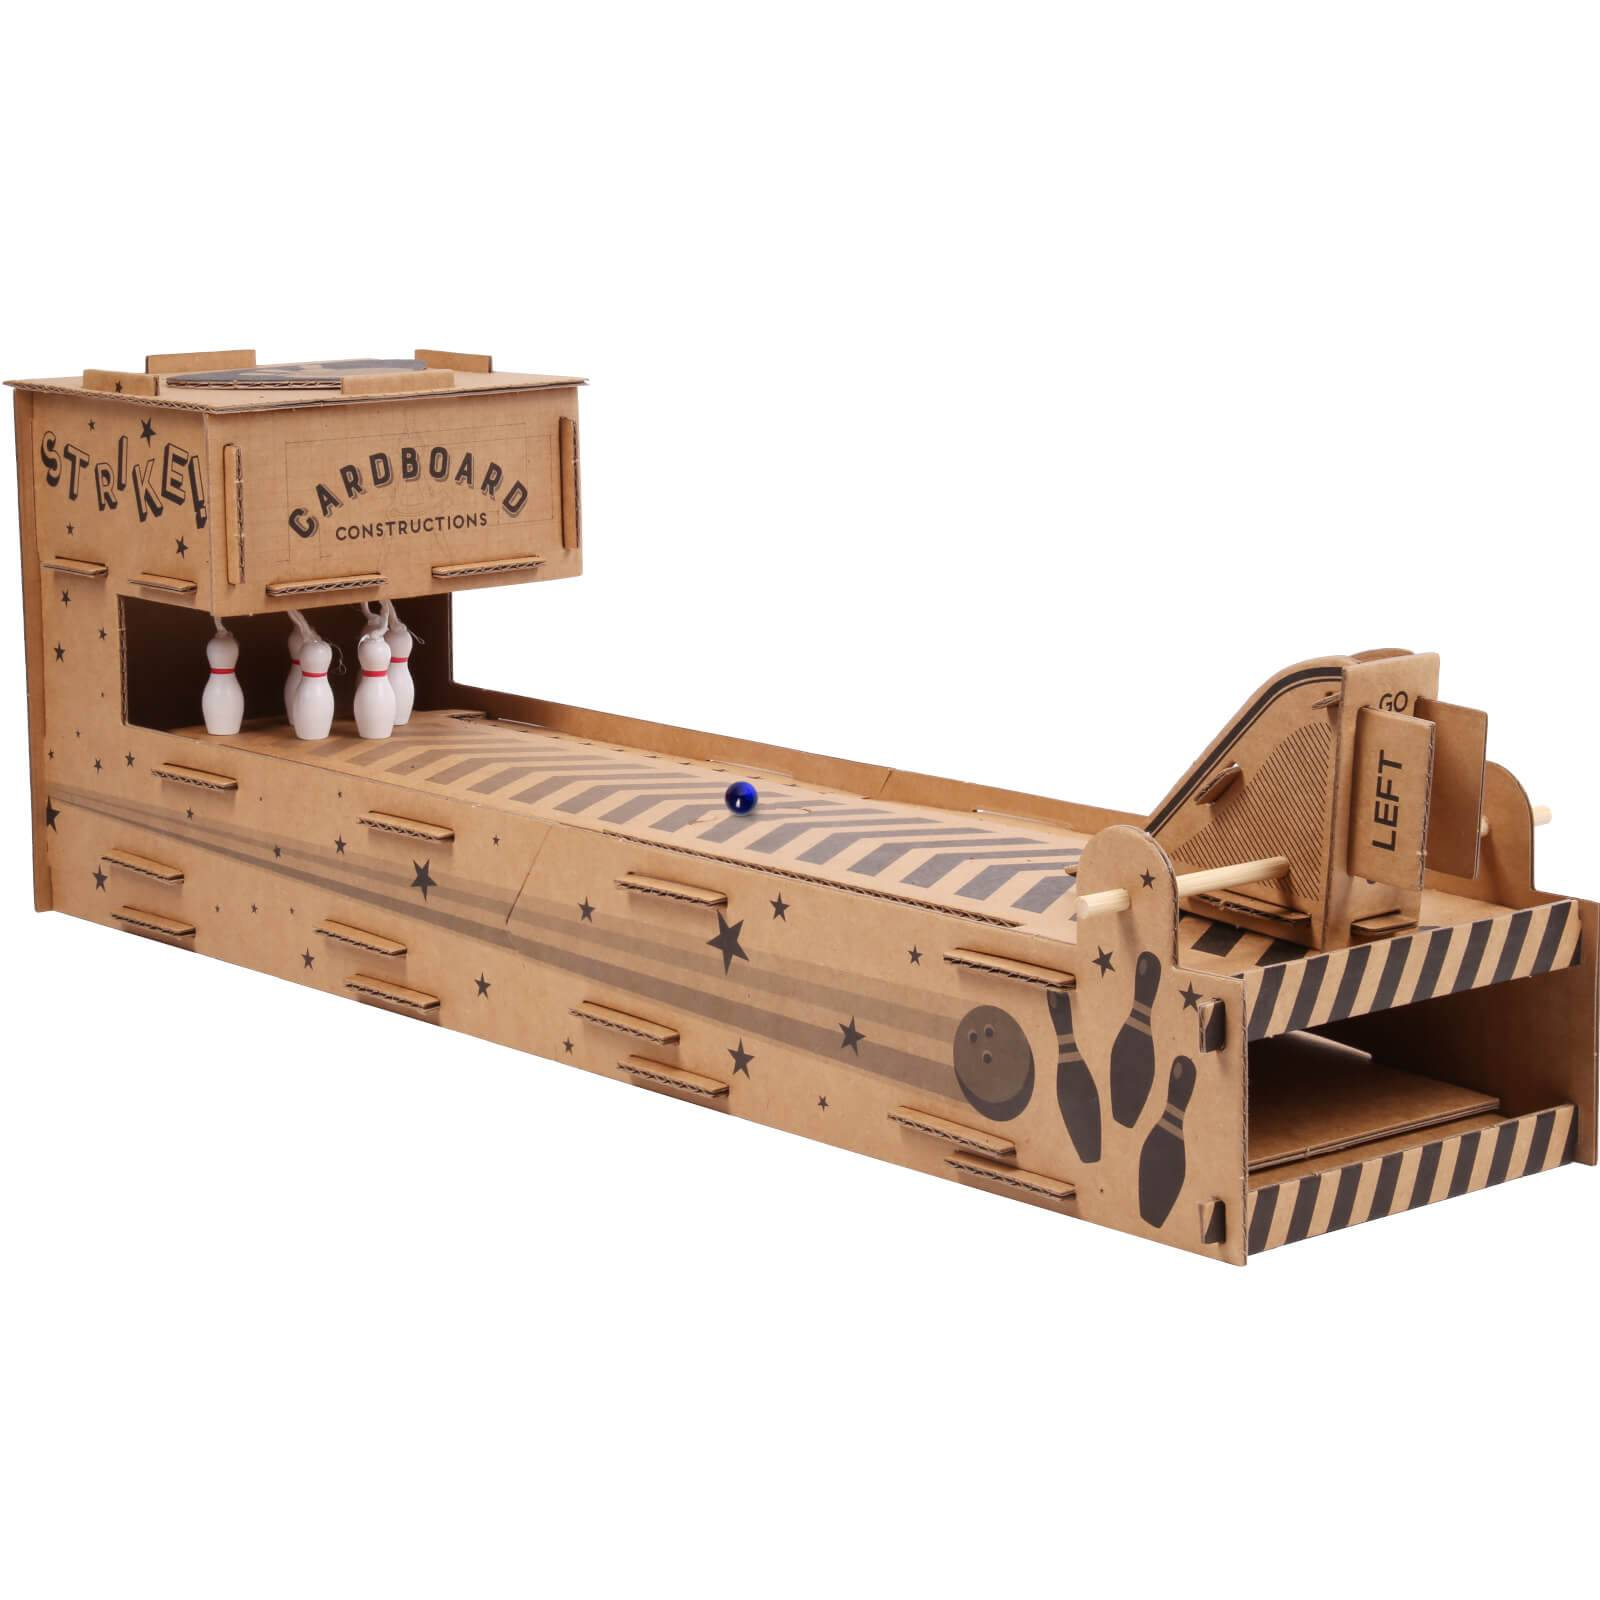 Build Your Own Bowling Alley-unisex